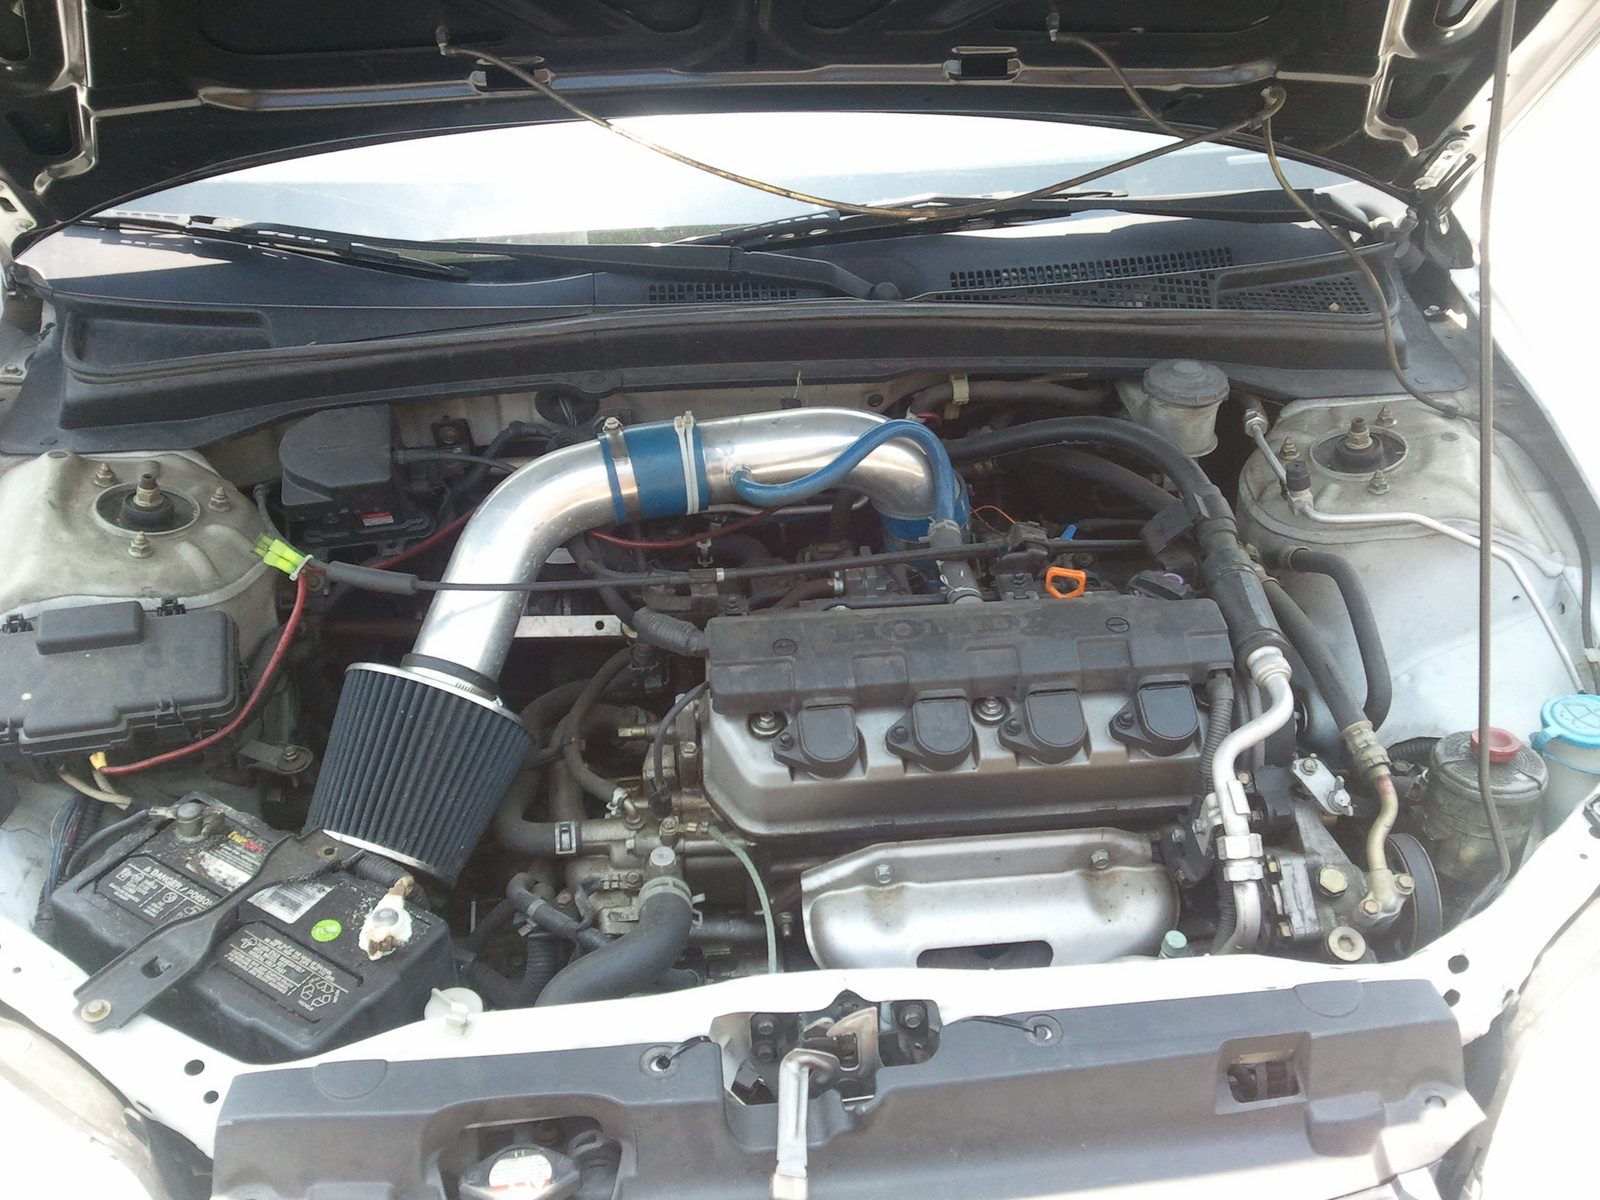 2001 Honda Civic Lx Sedan Engine Specs